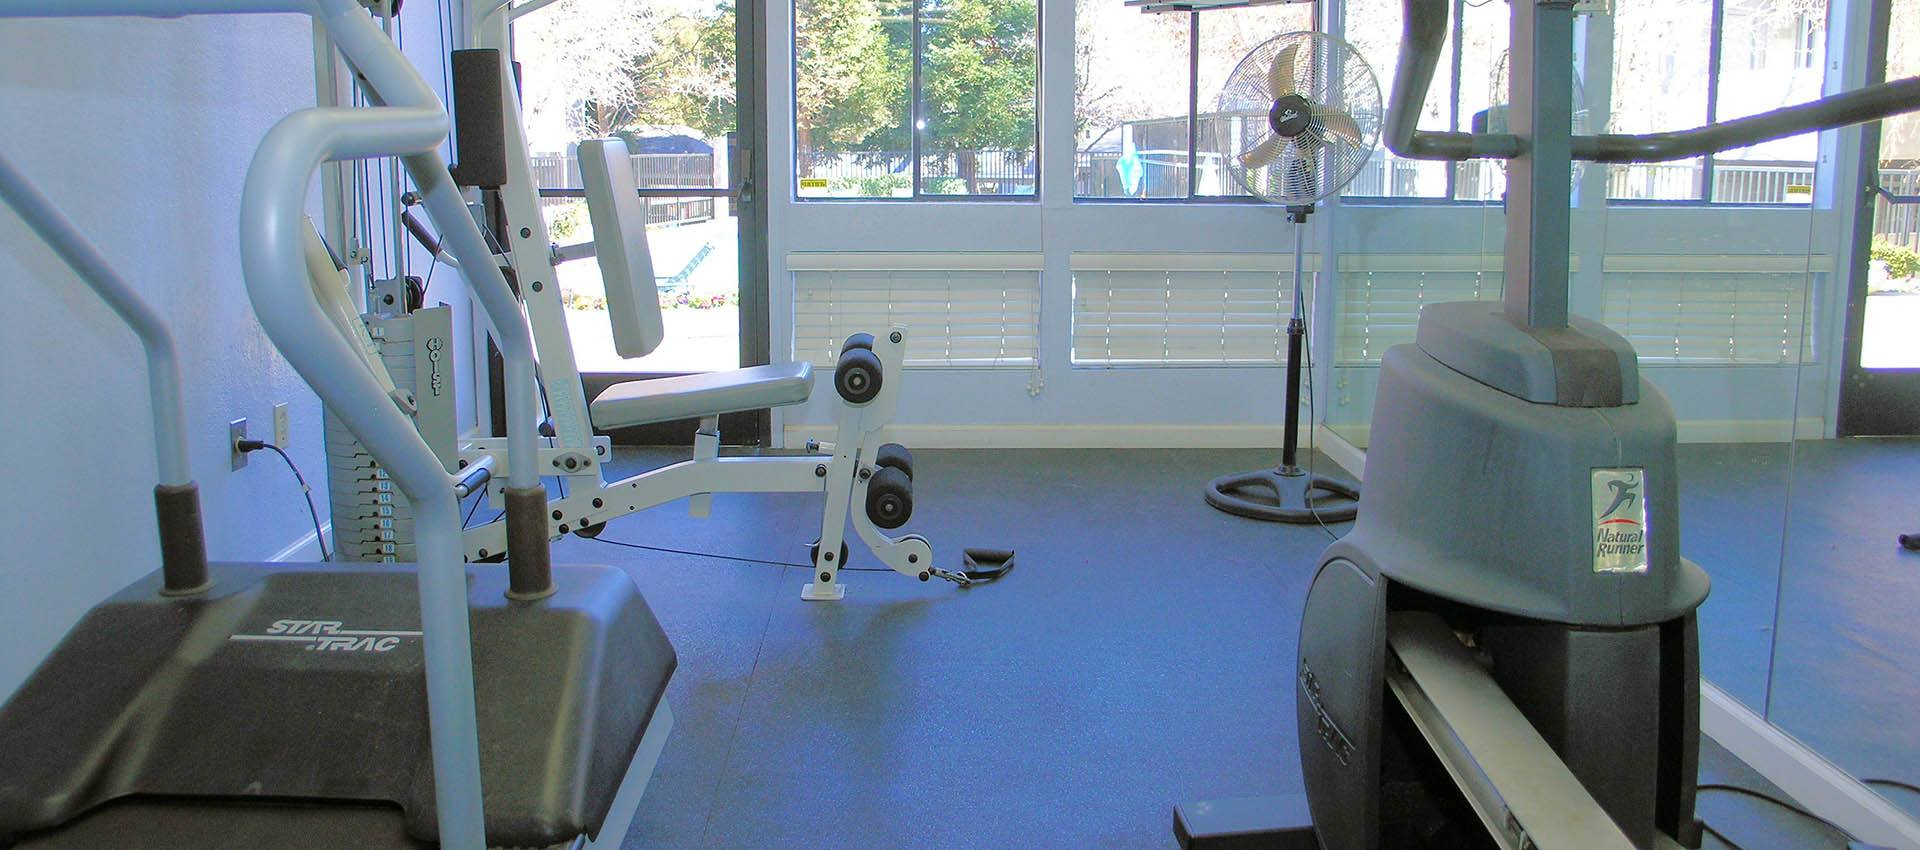 Cardio Equipment In Fitness Center at Plum Tree Apartment Homes in Martinez, California